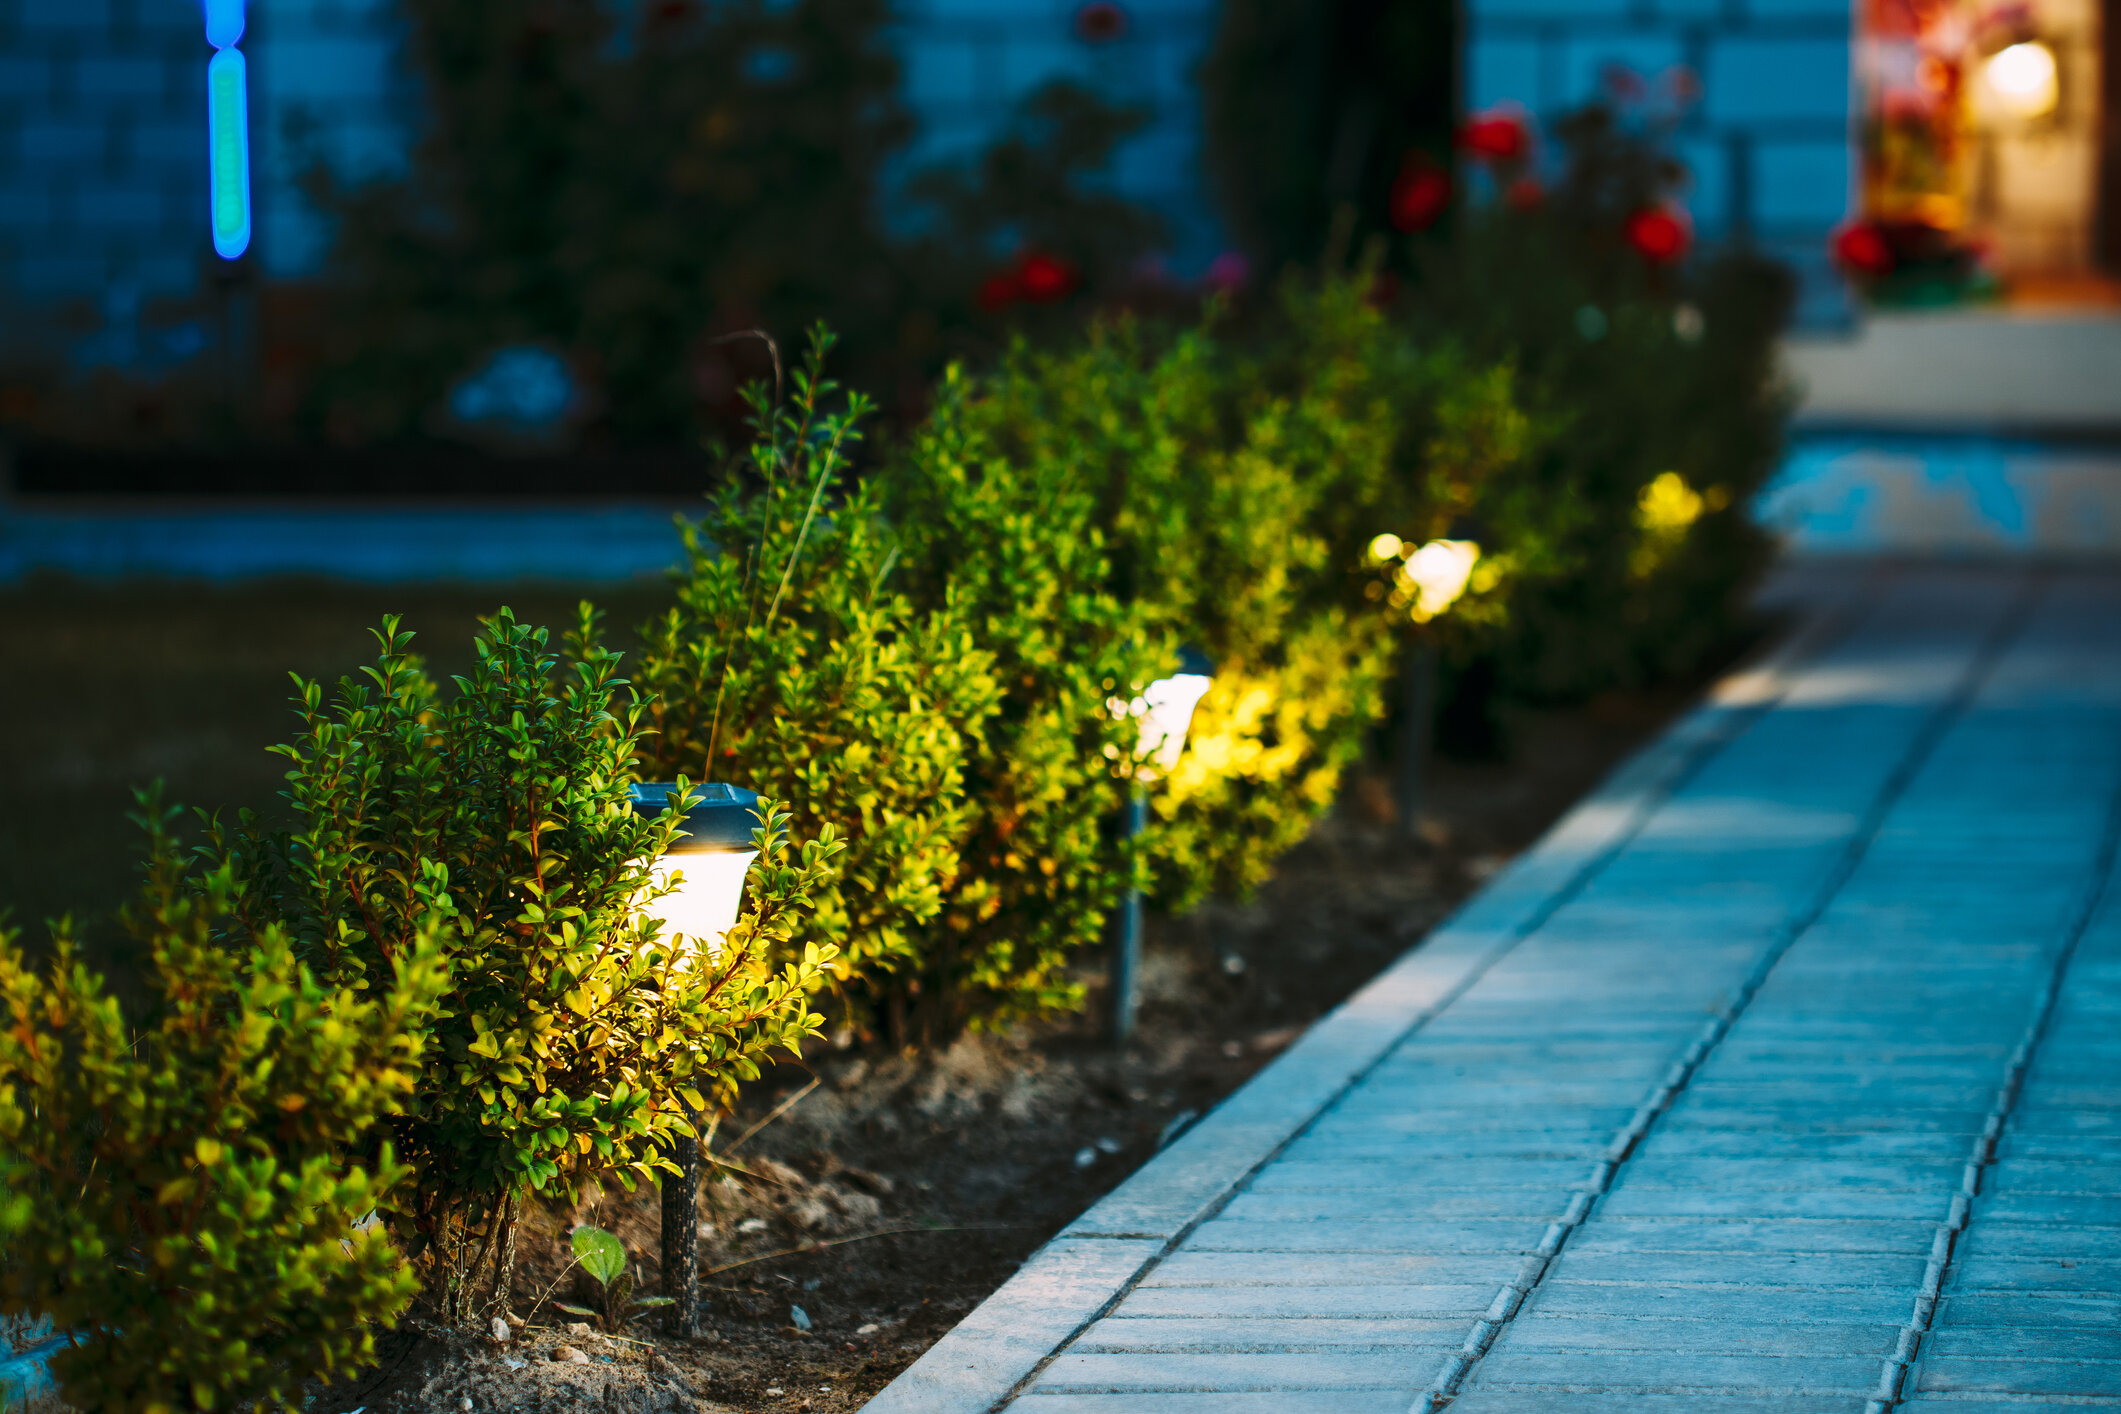 Lighting is a safety and aesthetic addition to your landscape.